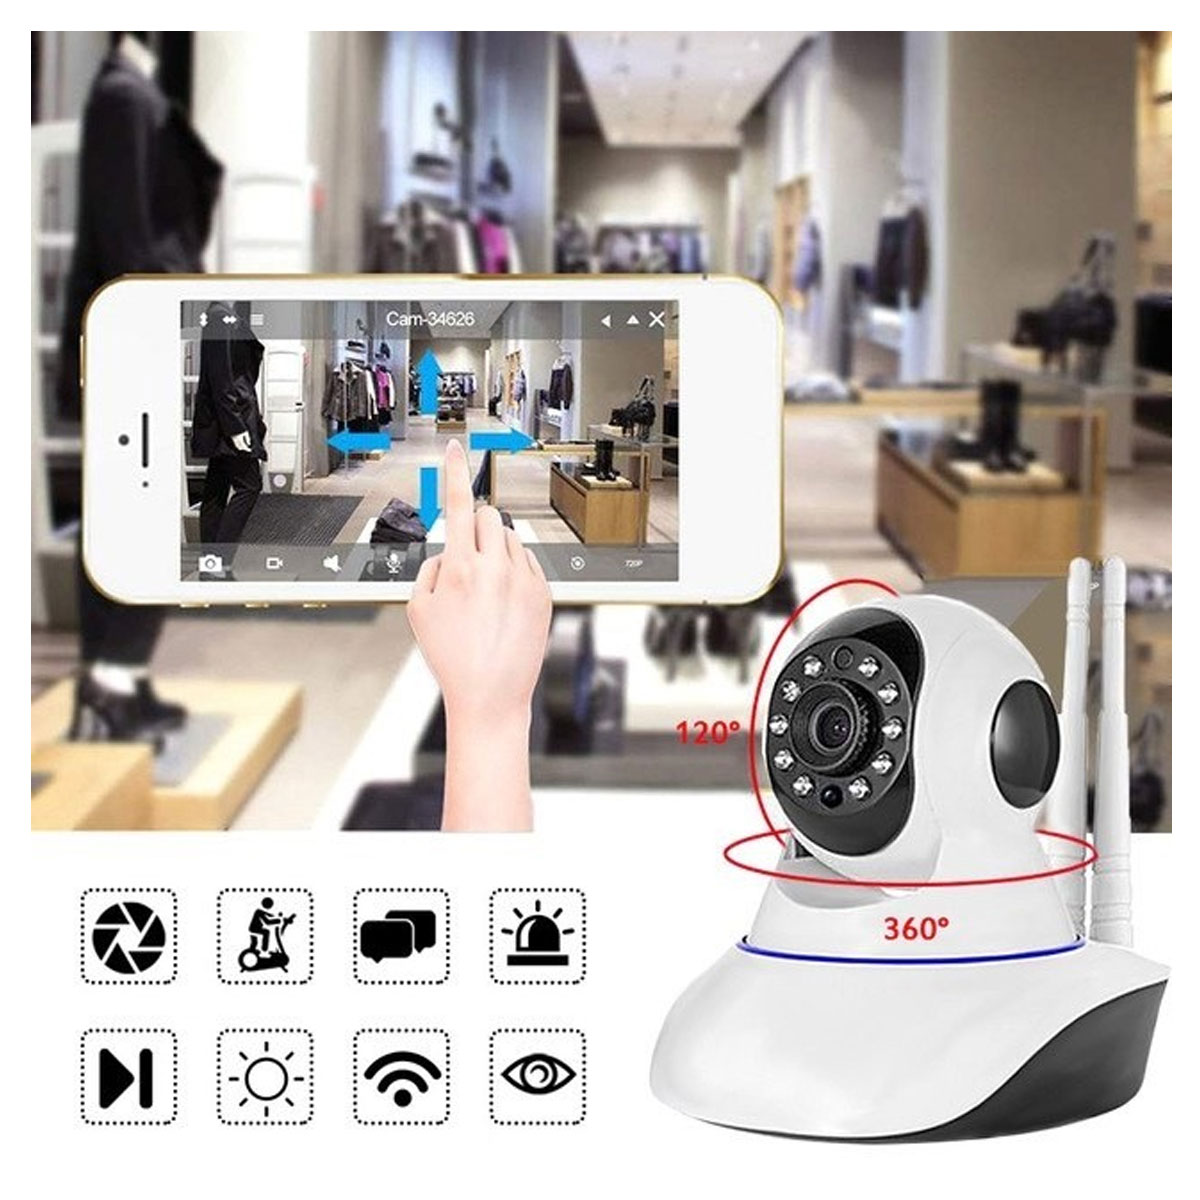 Latest IP Wireless 360 Camera with 2 Antenna 2020 - White  Gallery Image 1